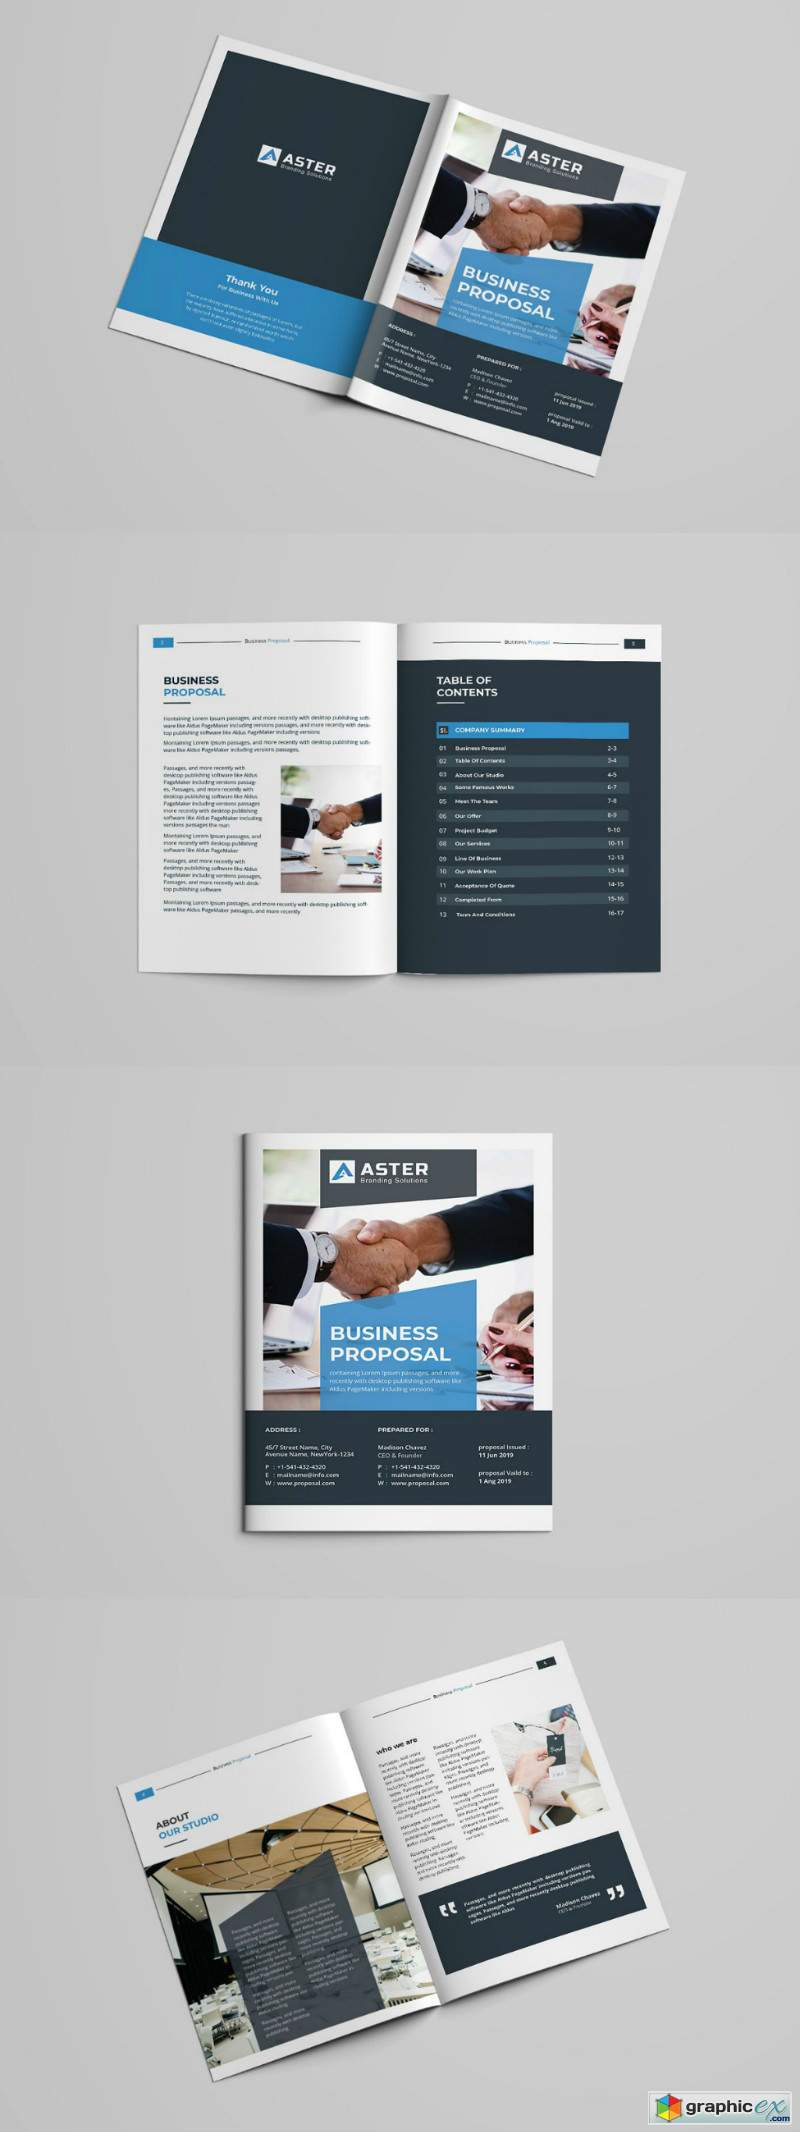 Business Proposal Template 2970998